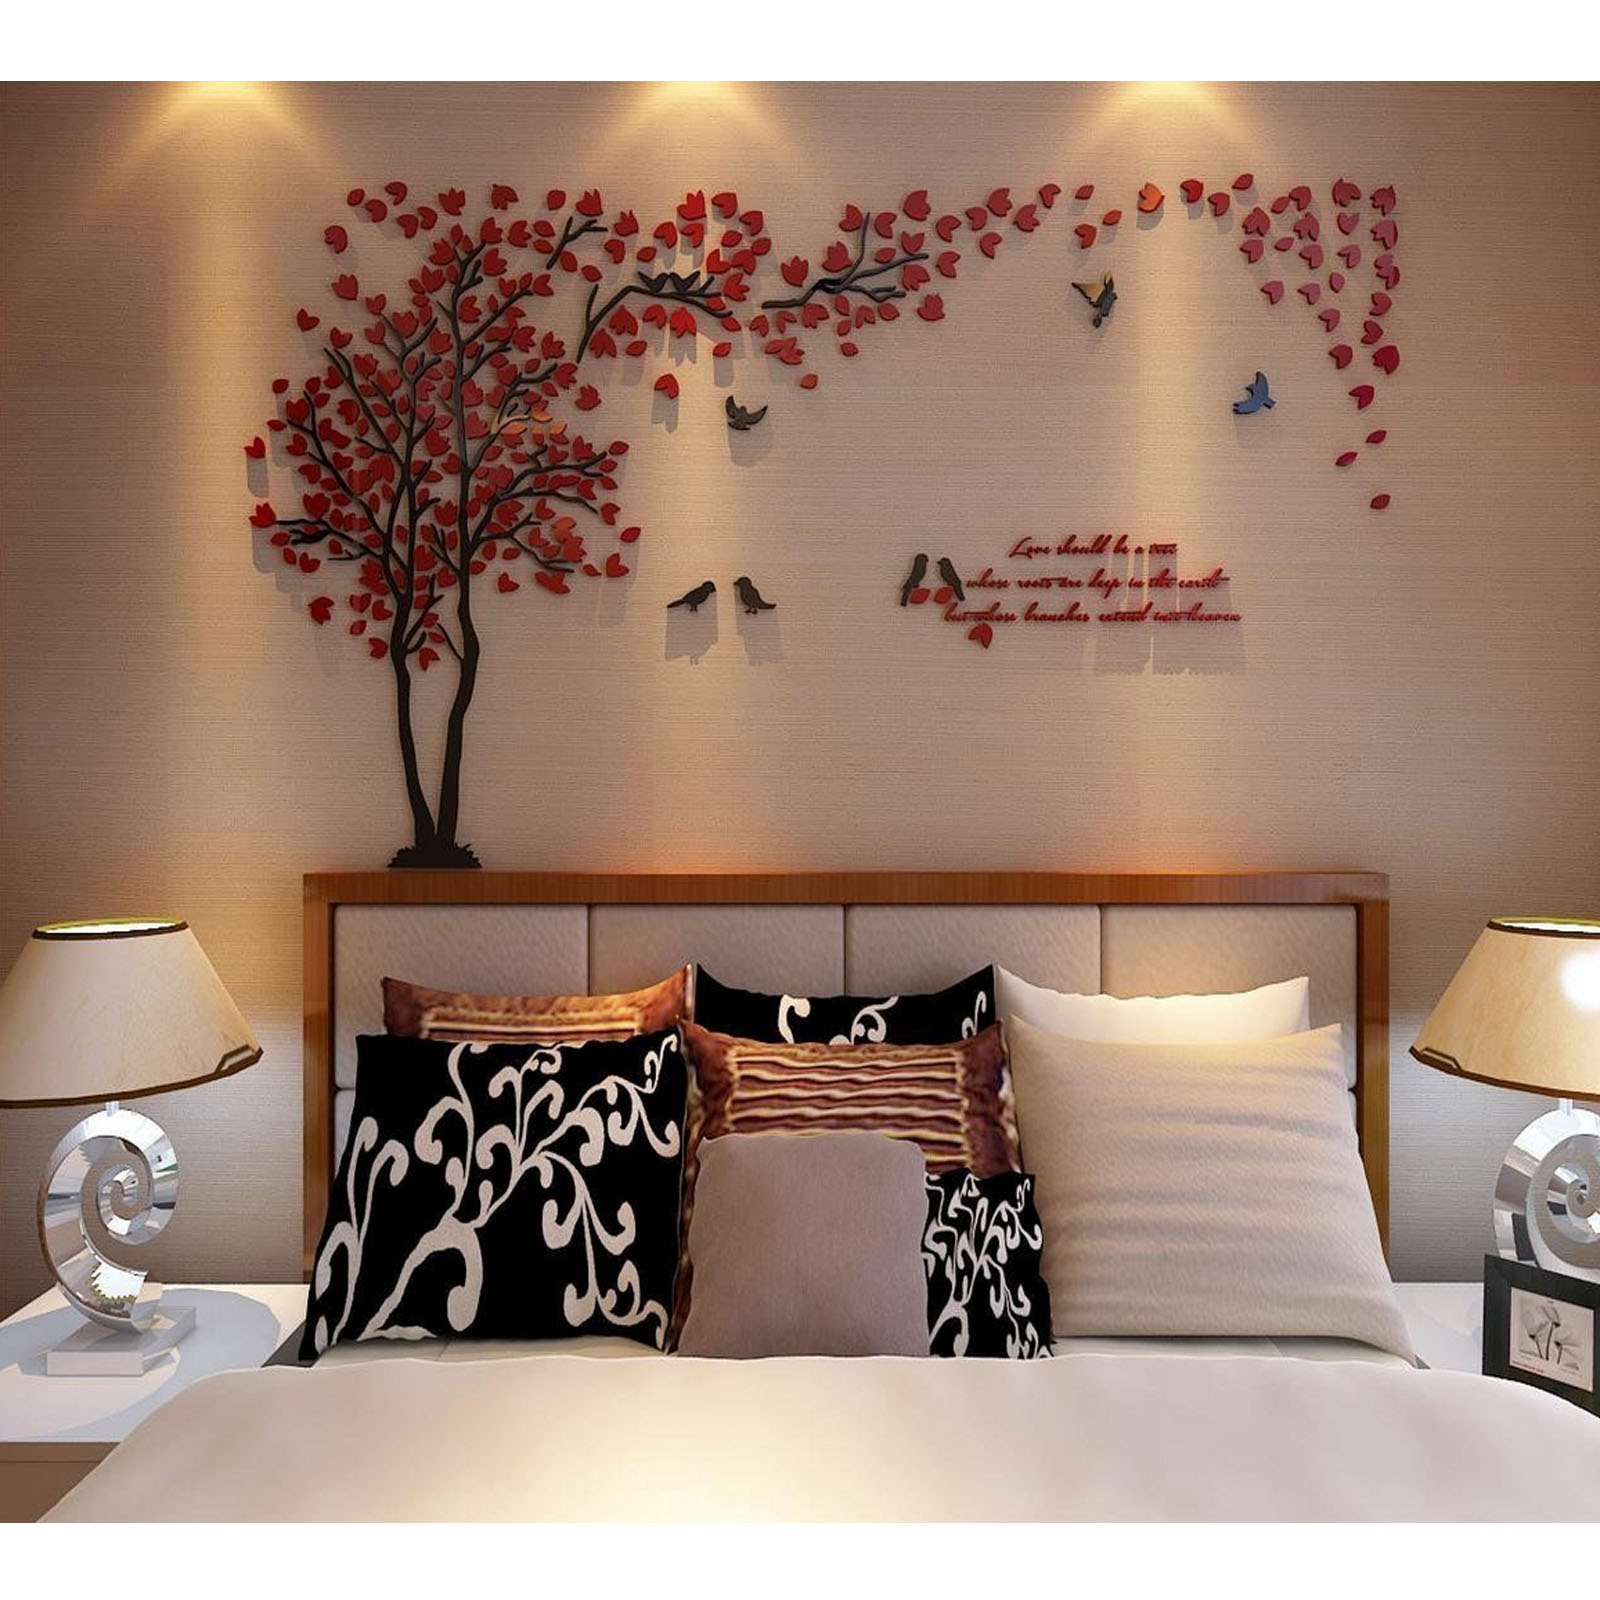 ... 3D DIY Creative Couple Tree Decal Wall Sticker Removable Art Mural Room  Décor ...